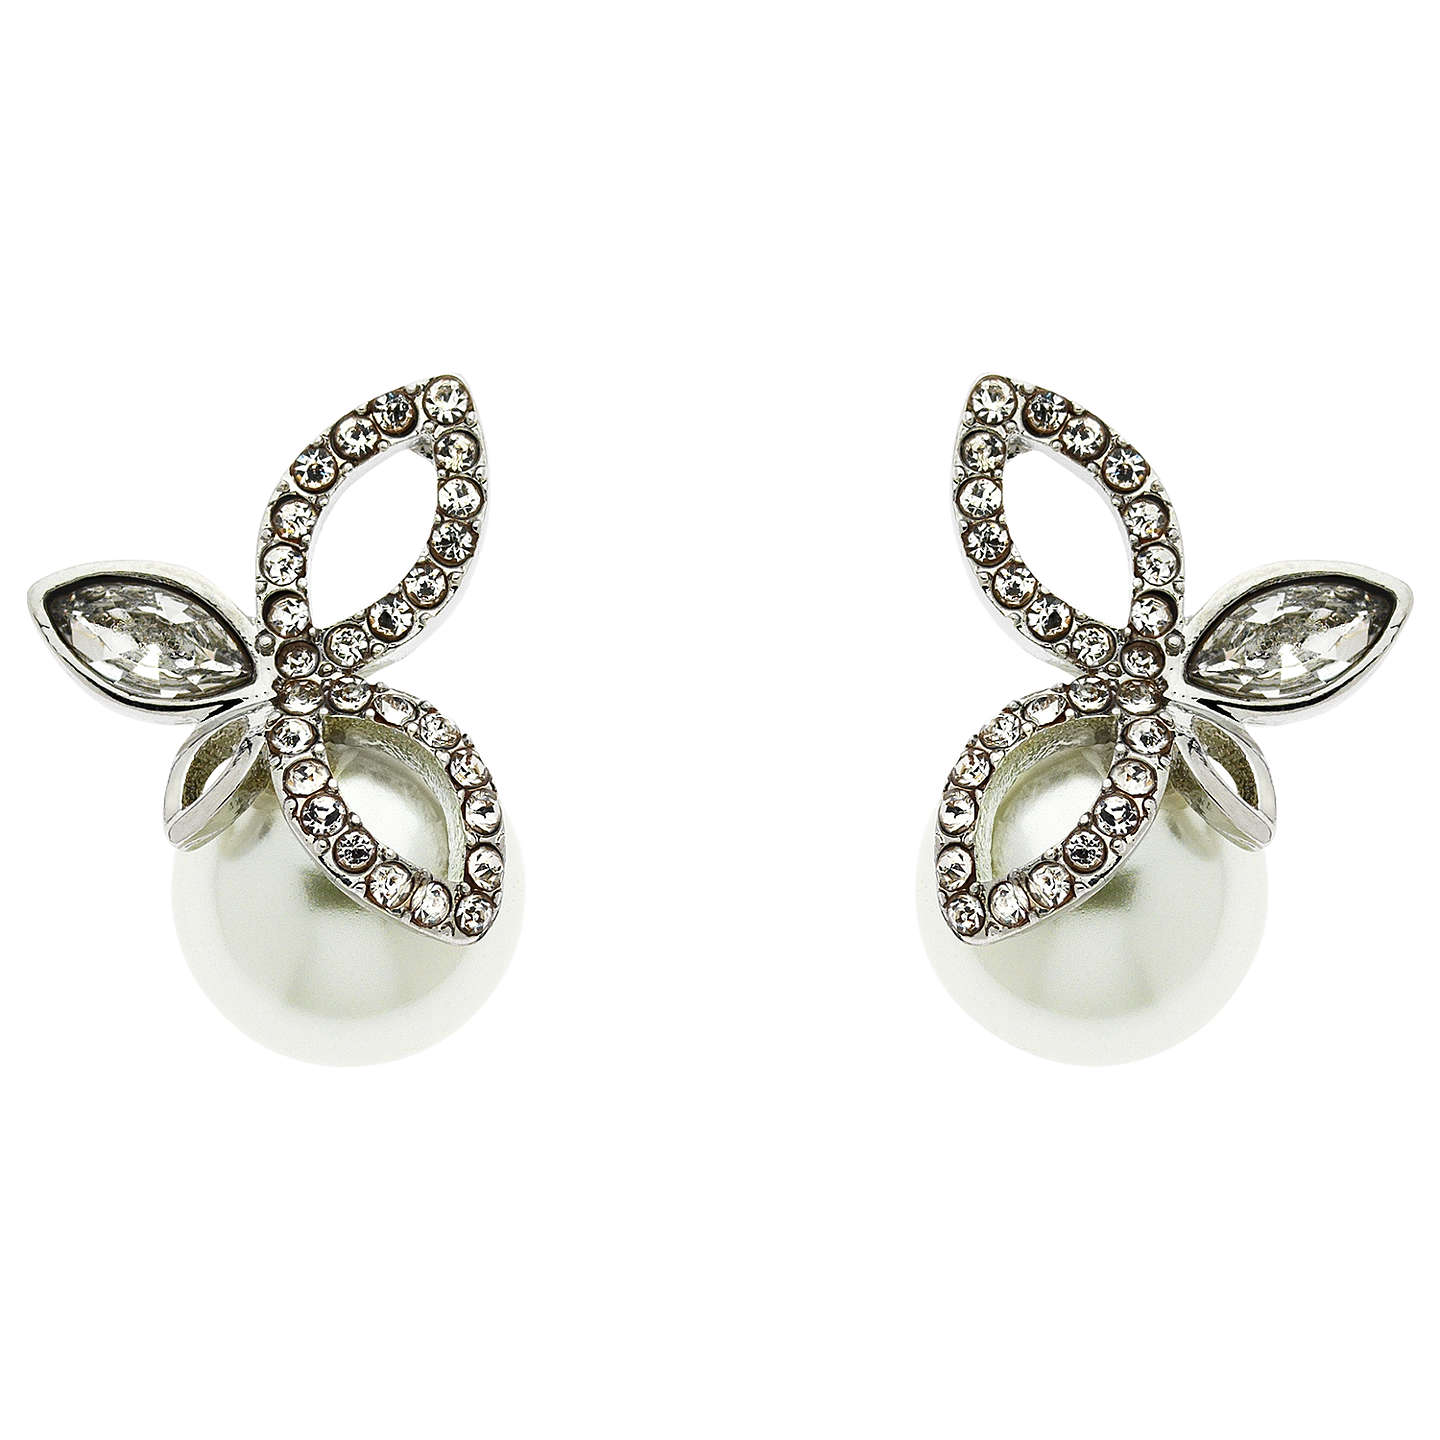 BuyFinesse Crystal and Pearl Leaf Stud Earrings, White, 10mm Online at johnlewis.com